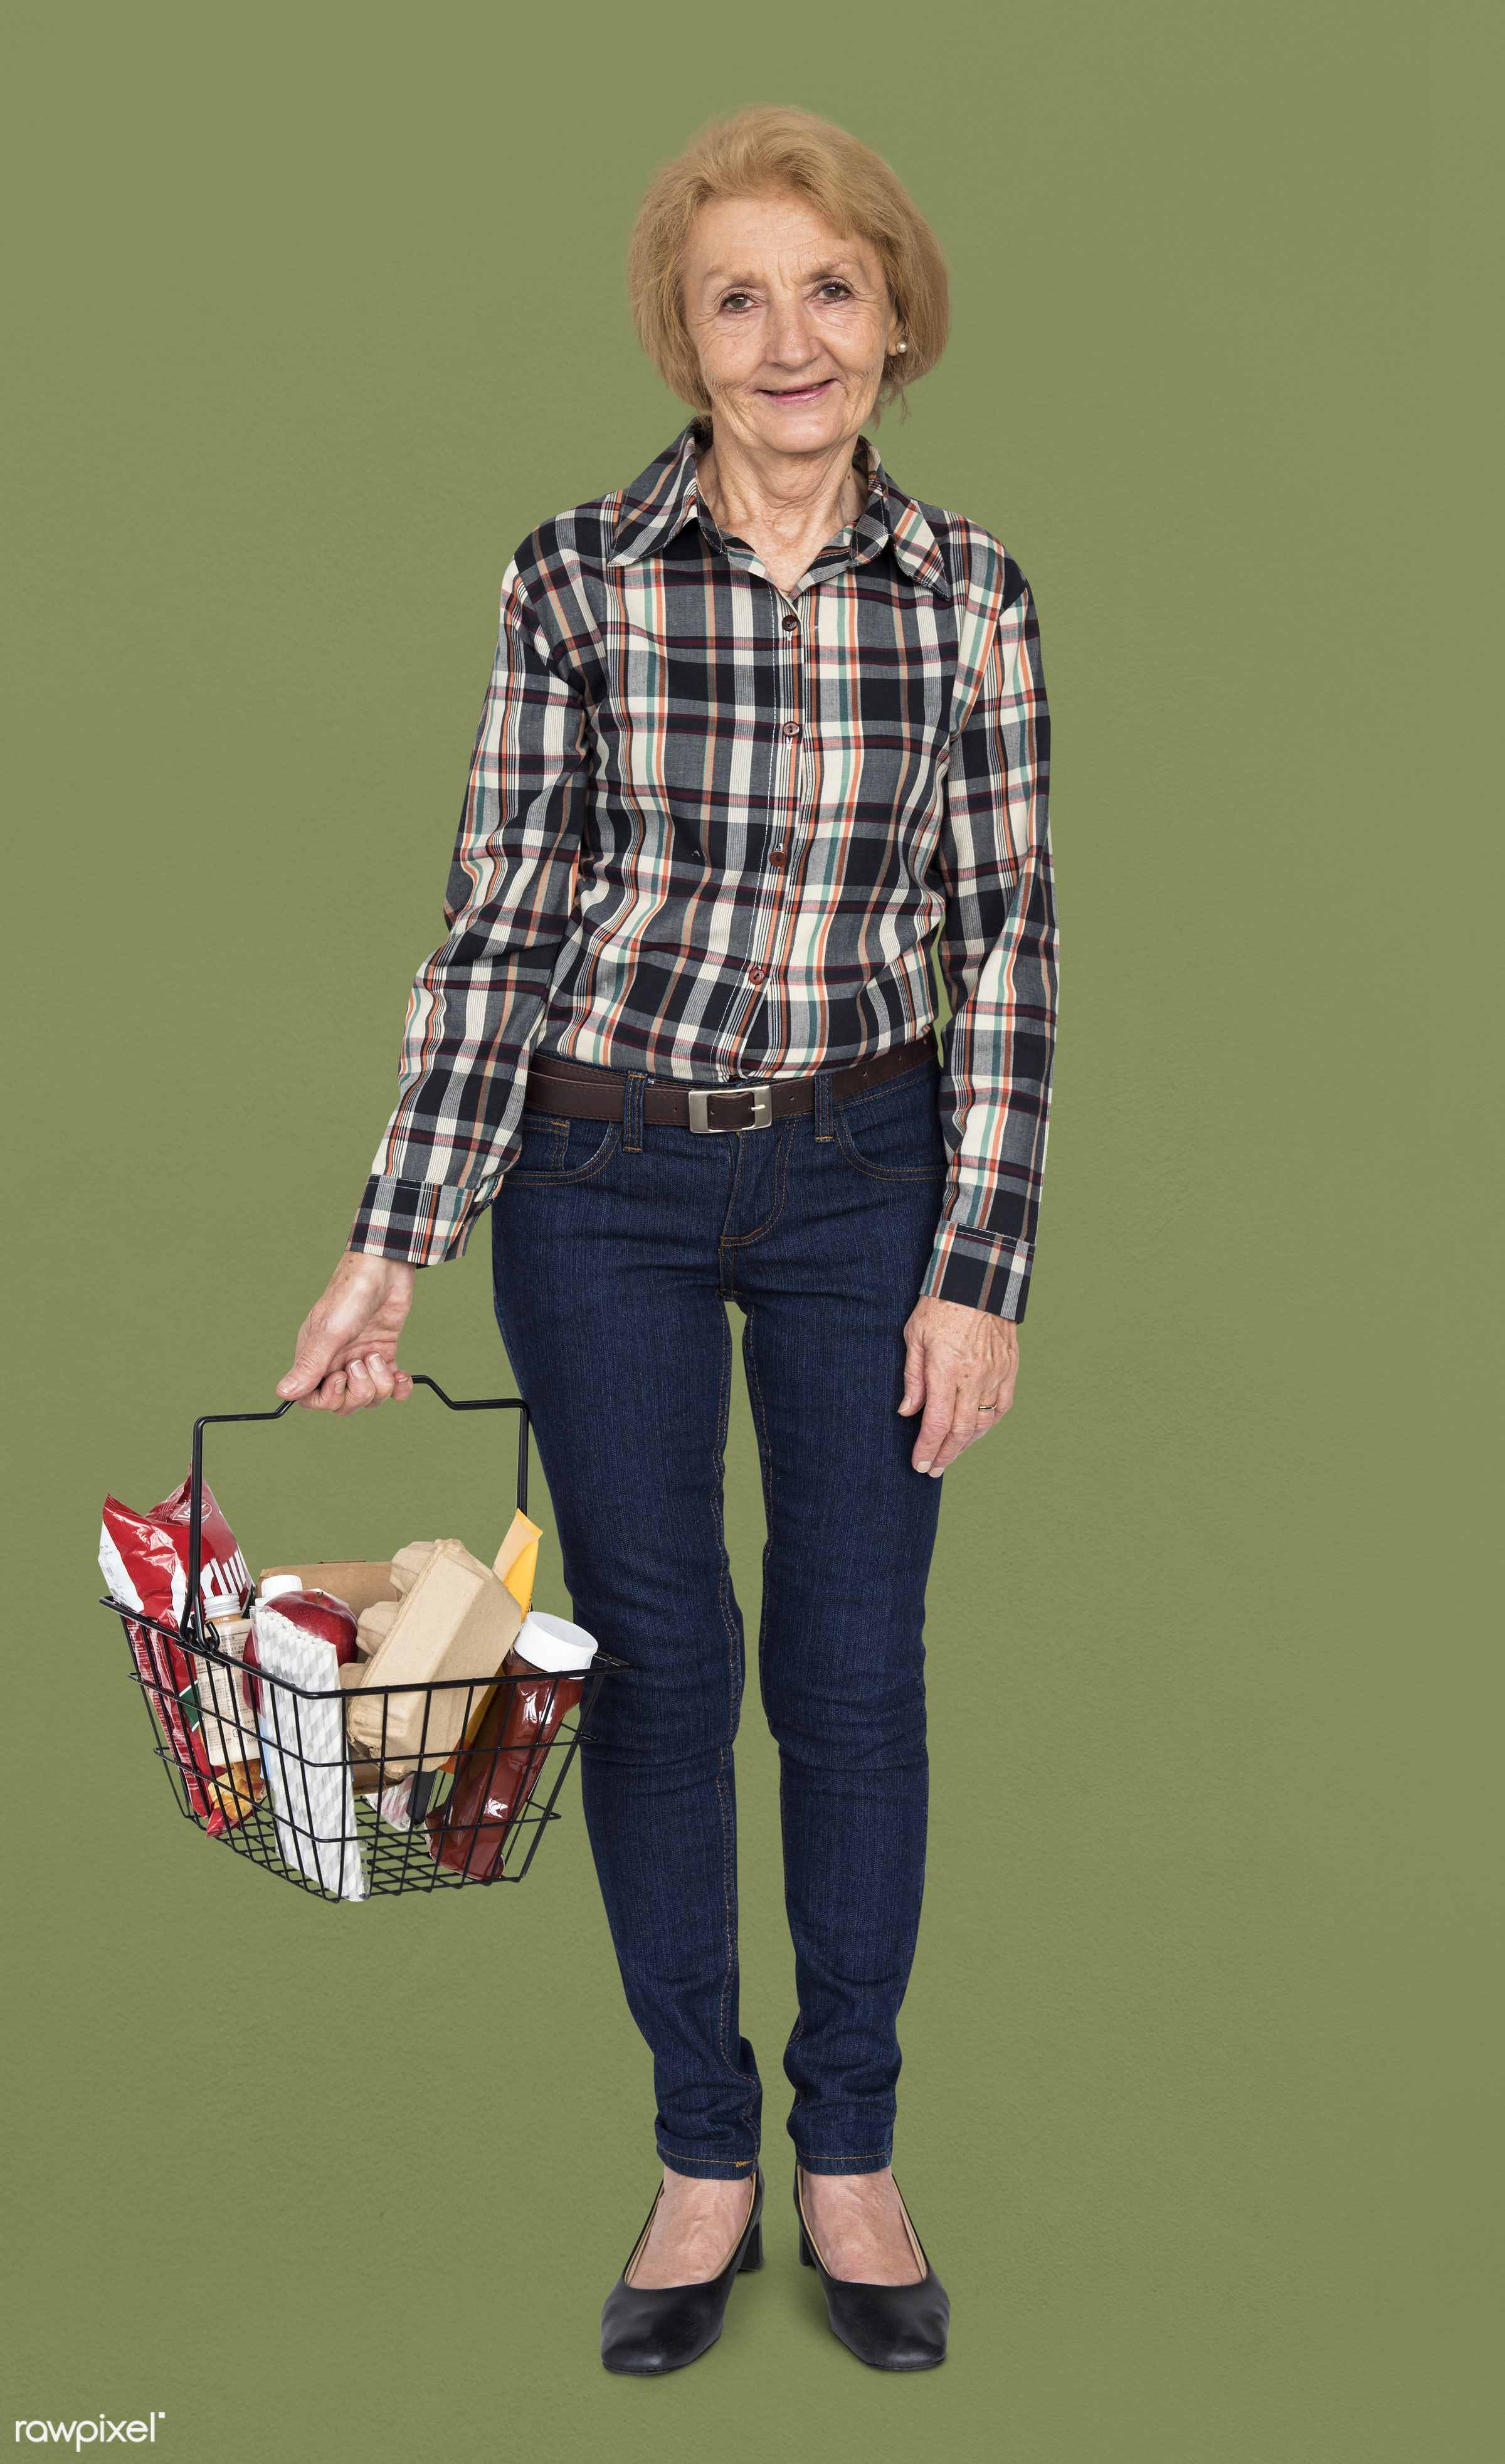 studio, expression, grocery, person, store, full length, merchandise, holding, customer, consumer, race, people, caucasian,...